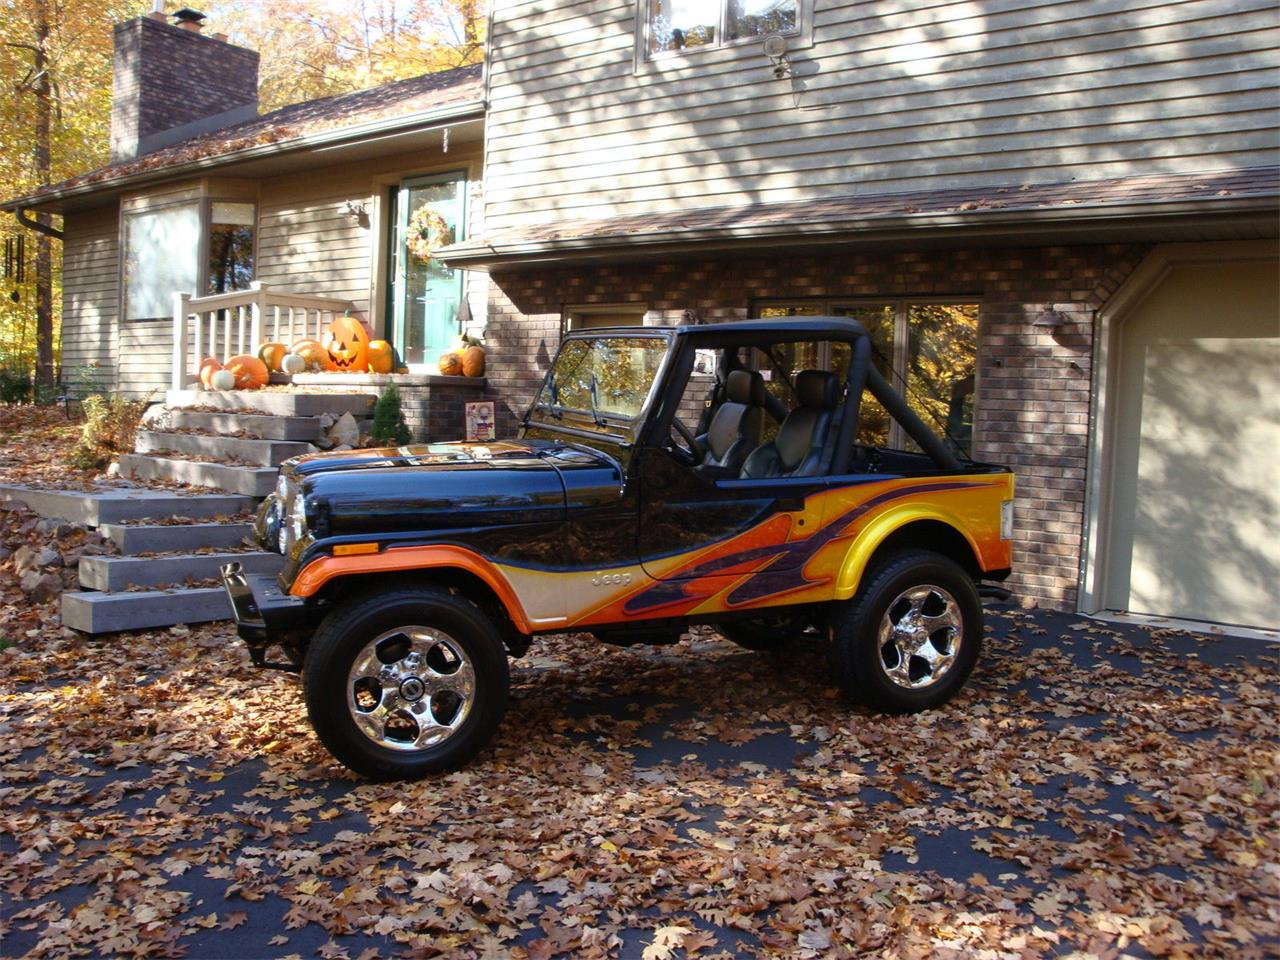 Large Picture of '83 Jeep CJ7 located in Wausau Wisconsin Offered by a Private Seller - KPJM